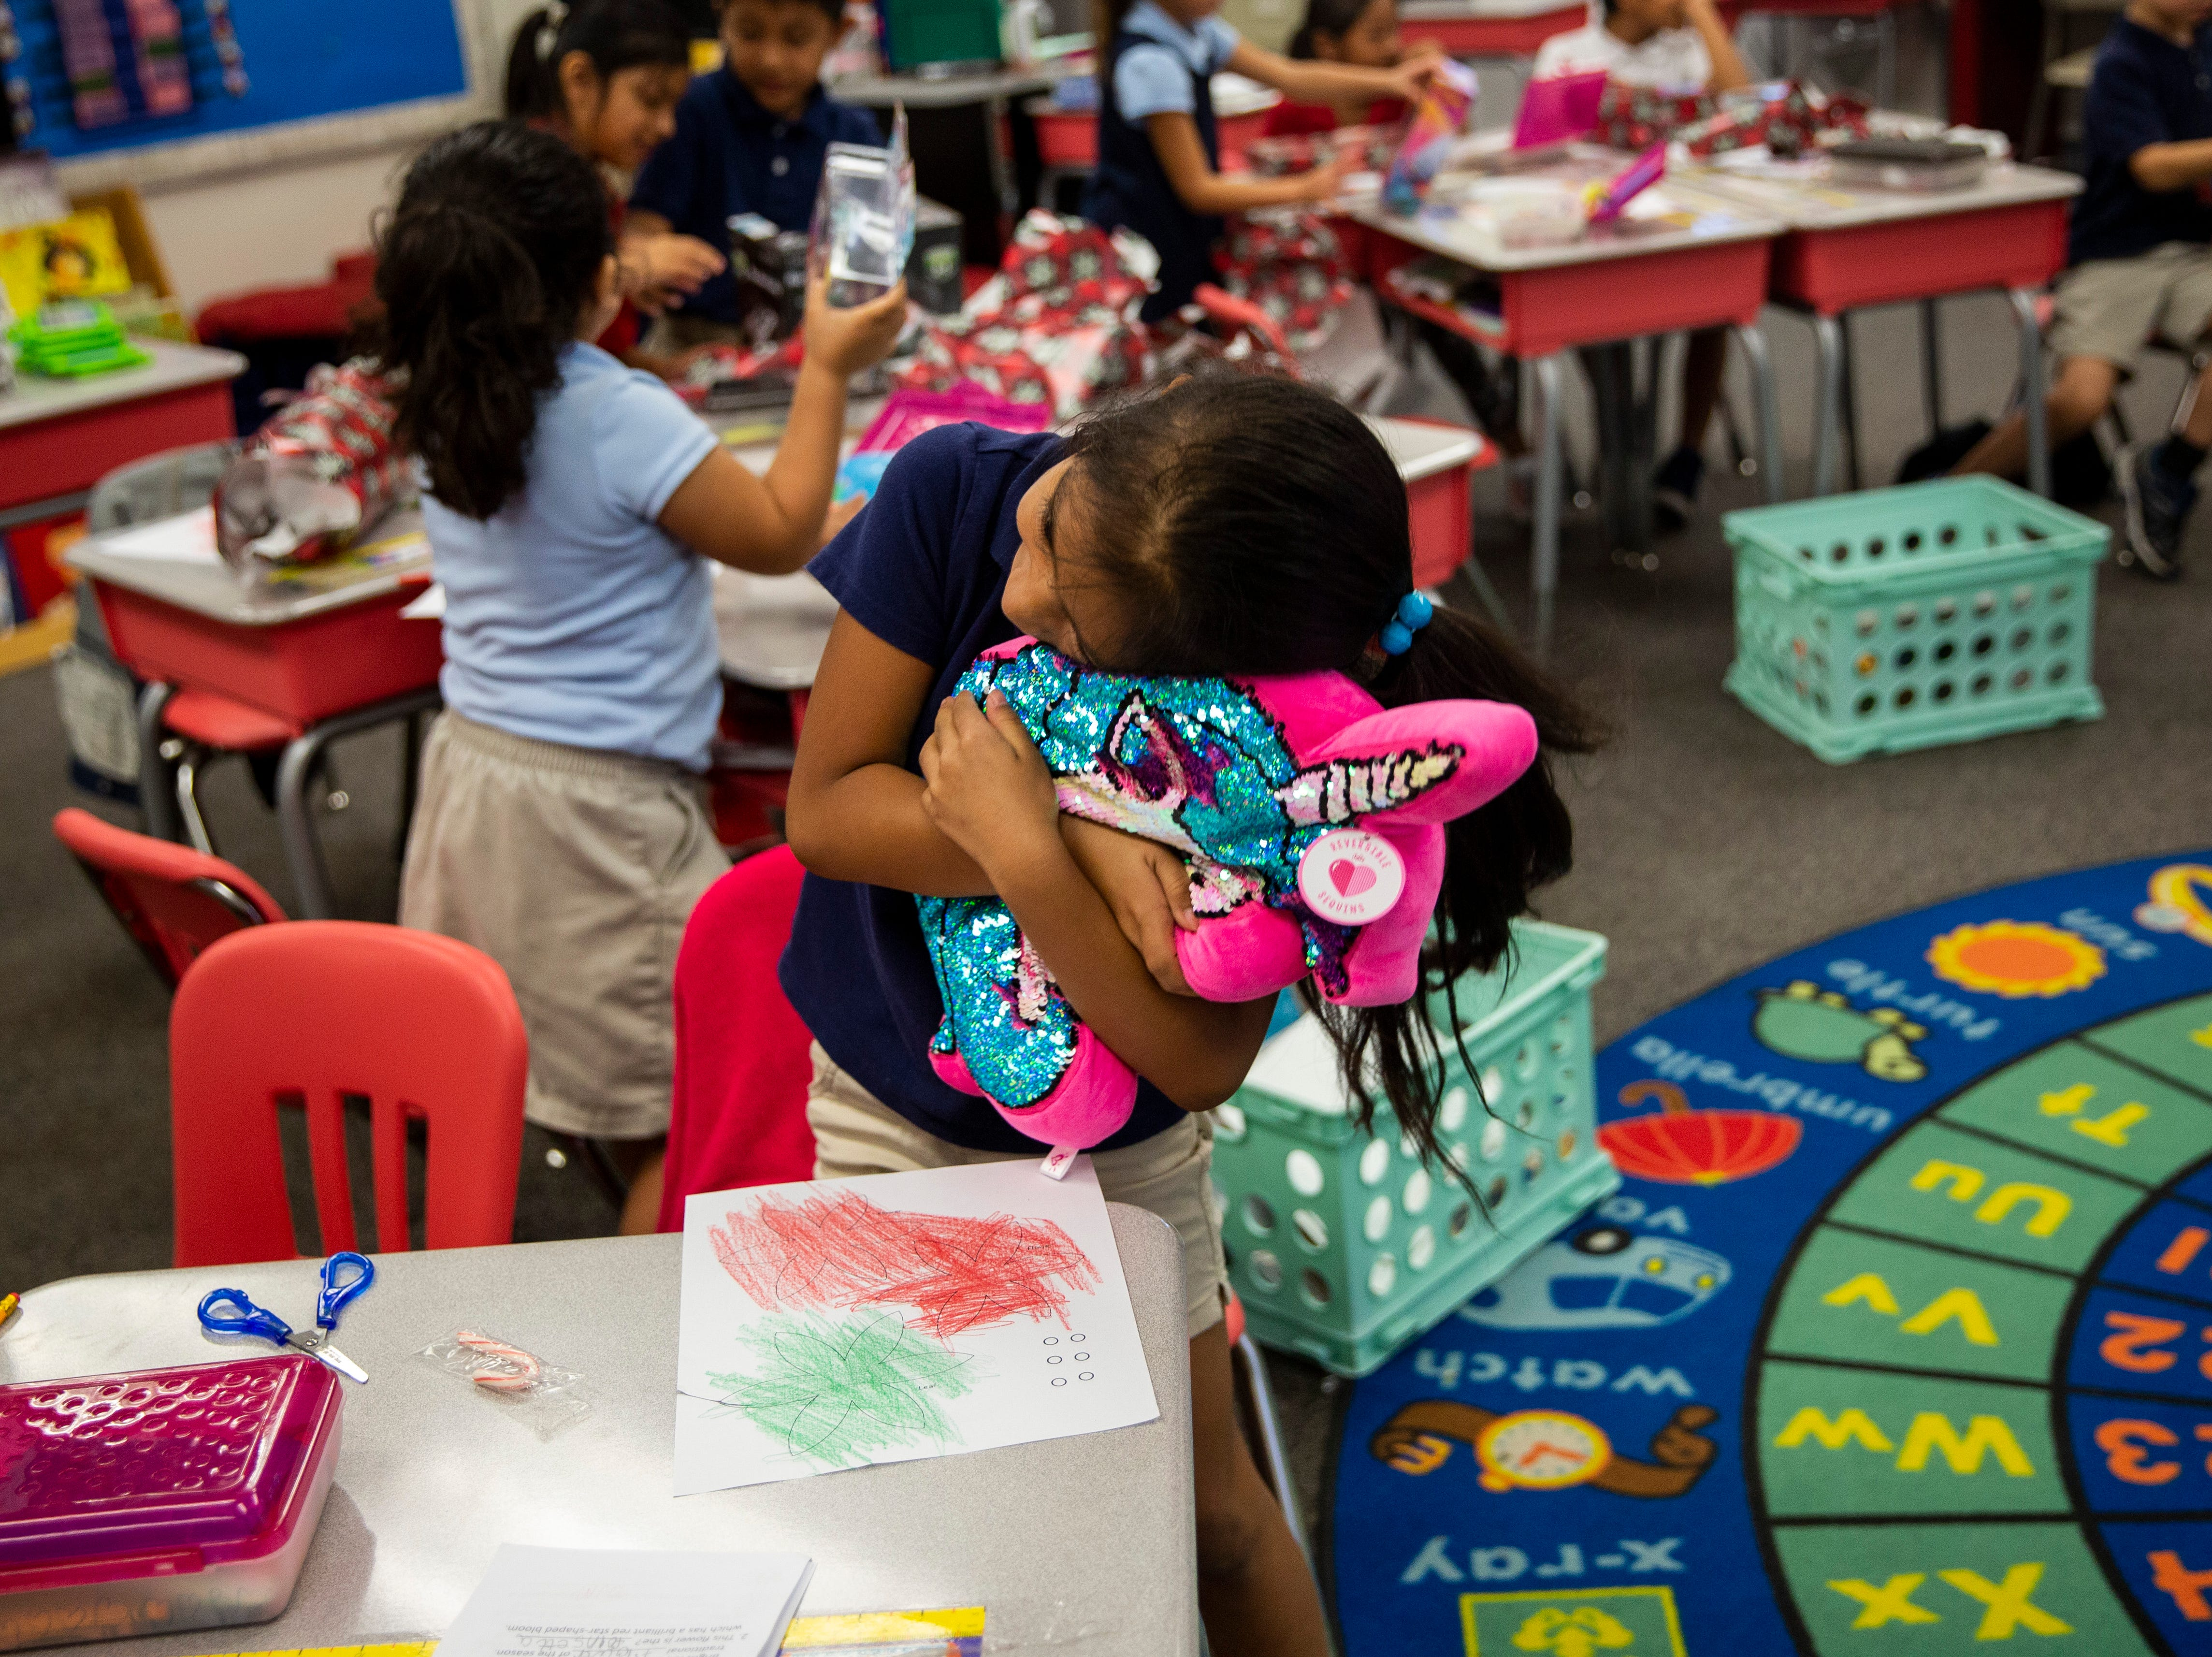 First grader Alyson Vicente hugs her new unicorn pillow, donated by Empowered Latinos, on Thursday, December 20, 2018, at Bonita Springs Elementary School in Bonita Springs.